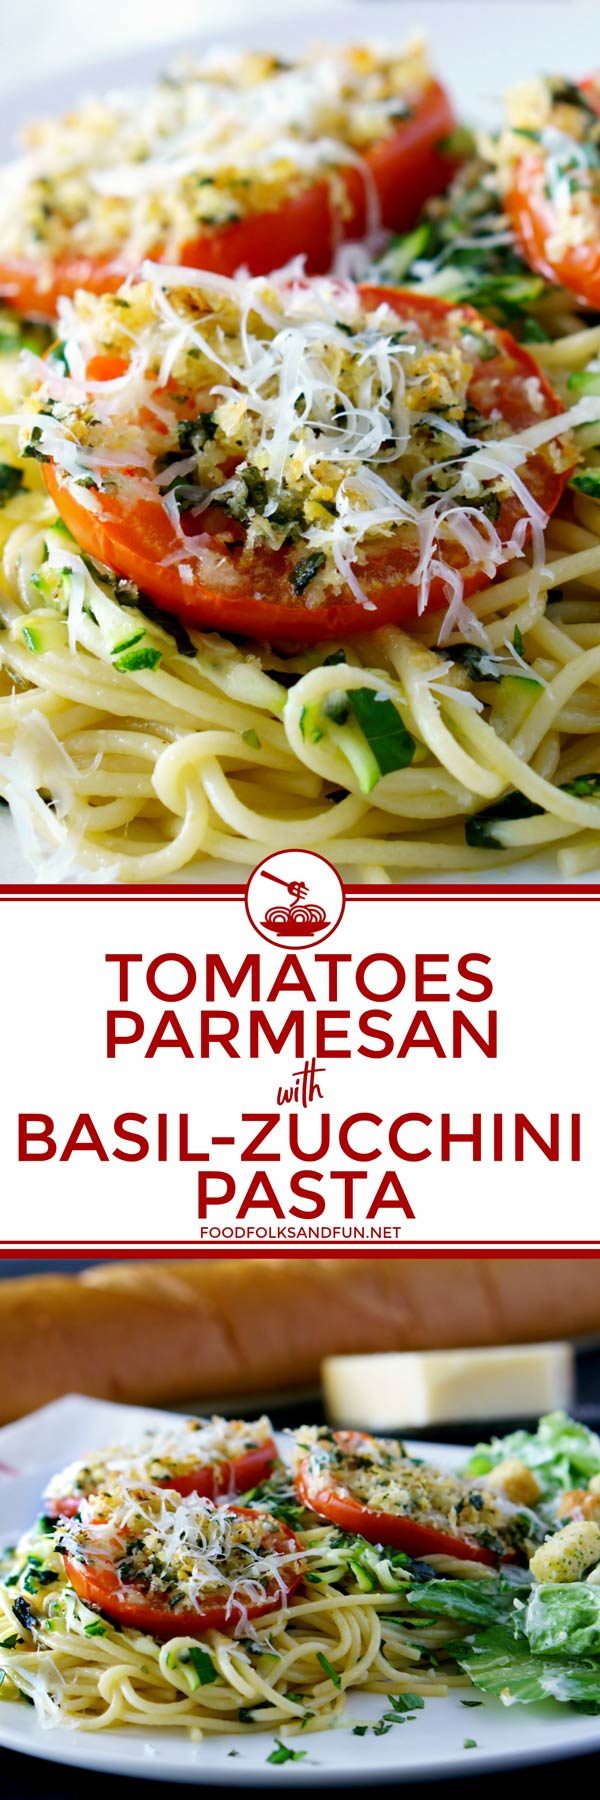 Best Bakes Tomatoes Parmesan with Basil Zucchini Pasta